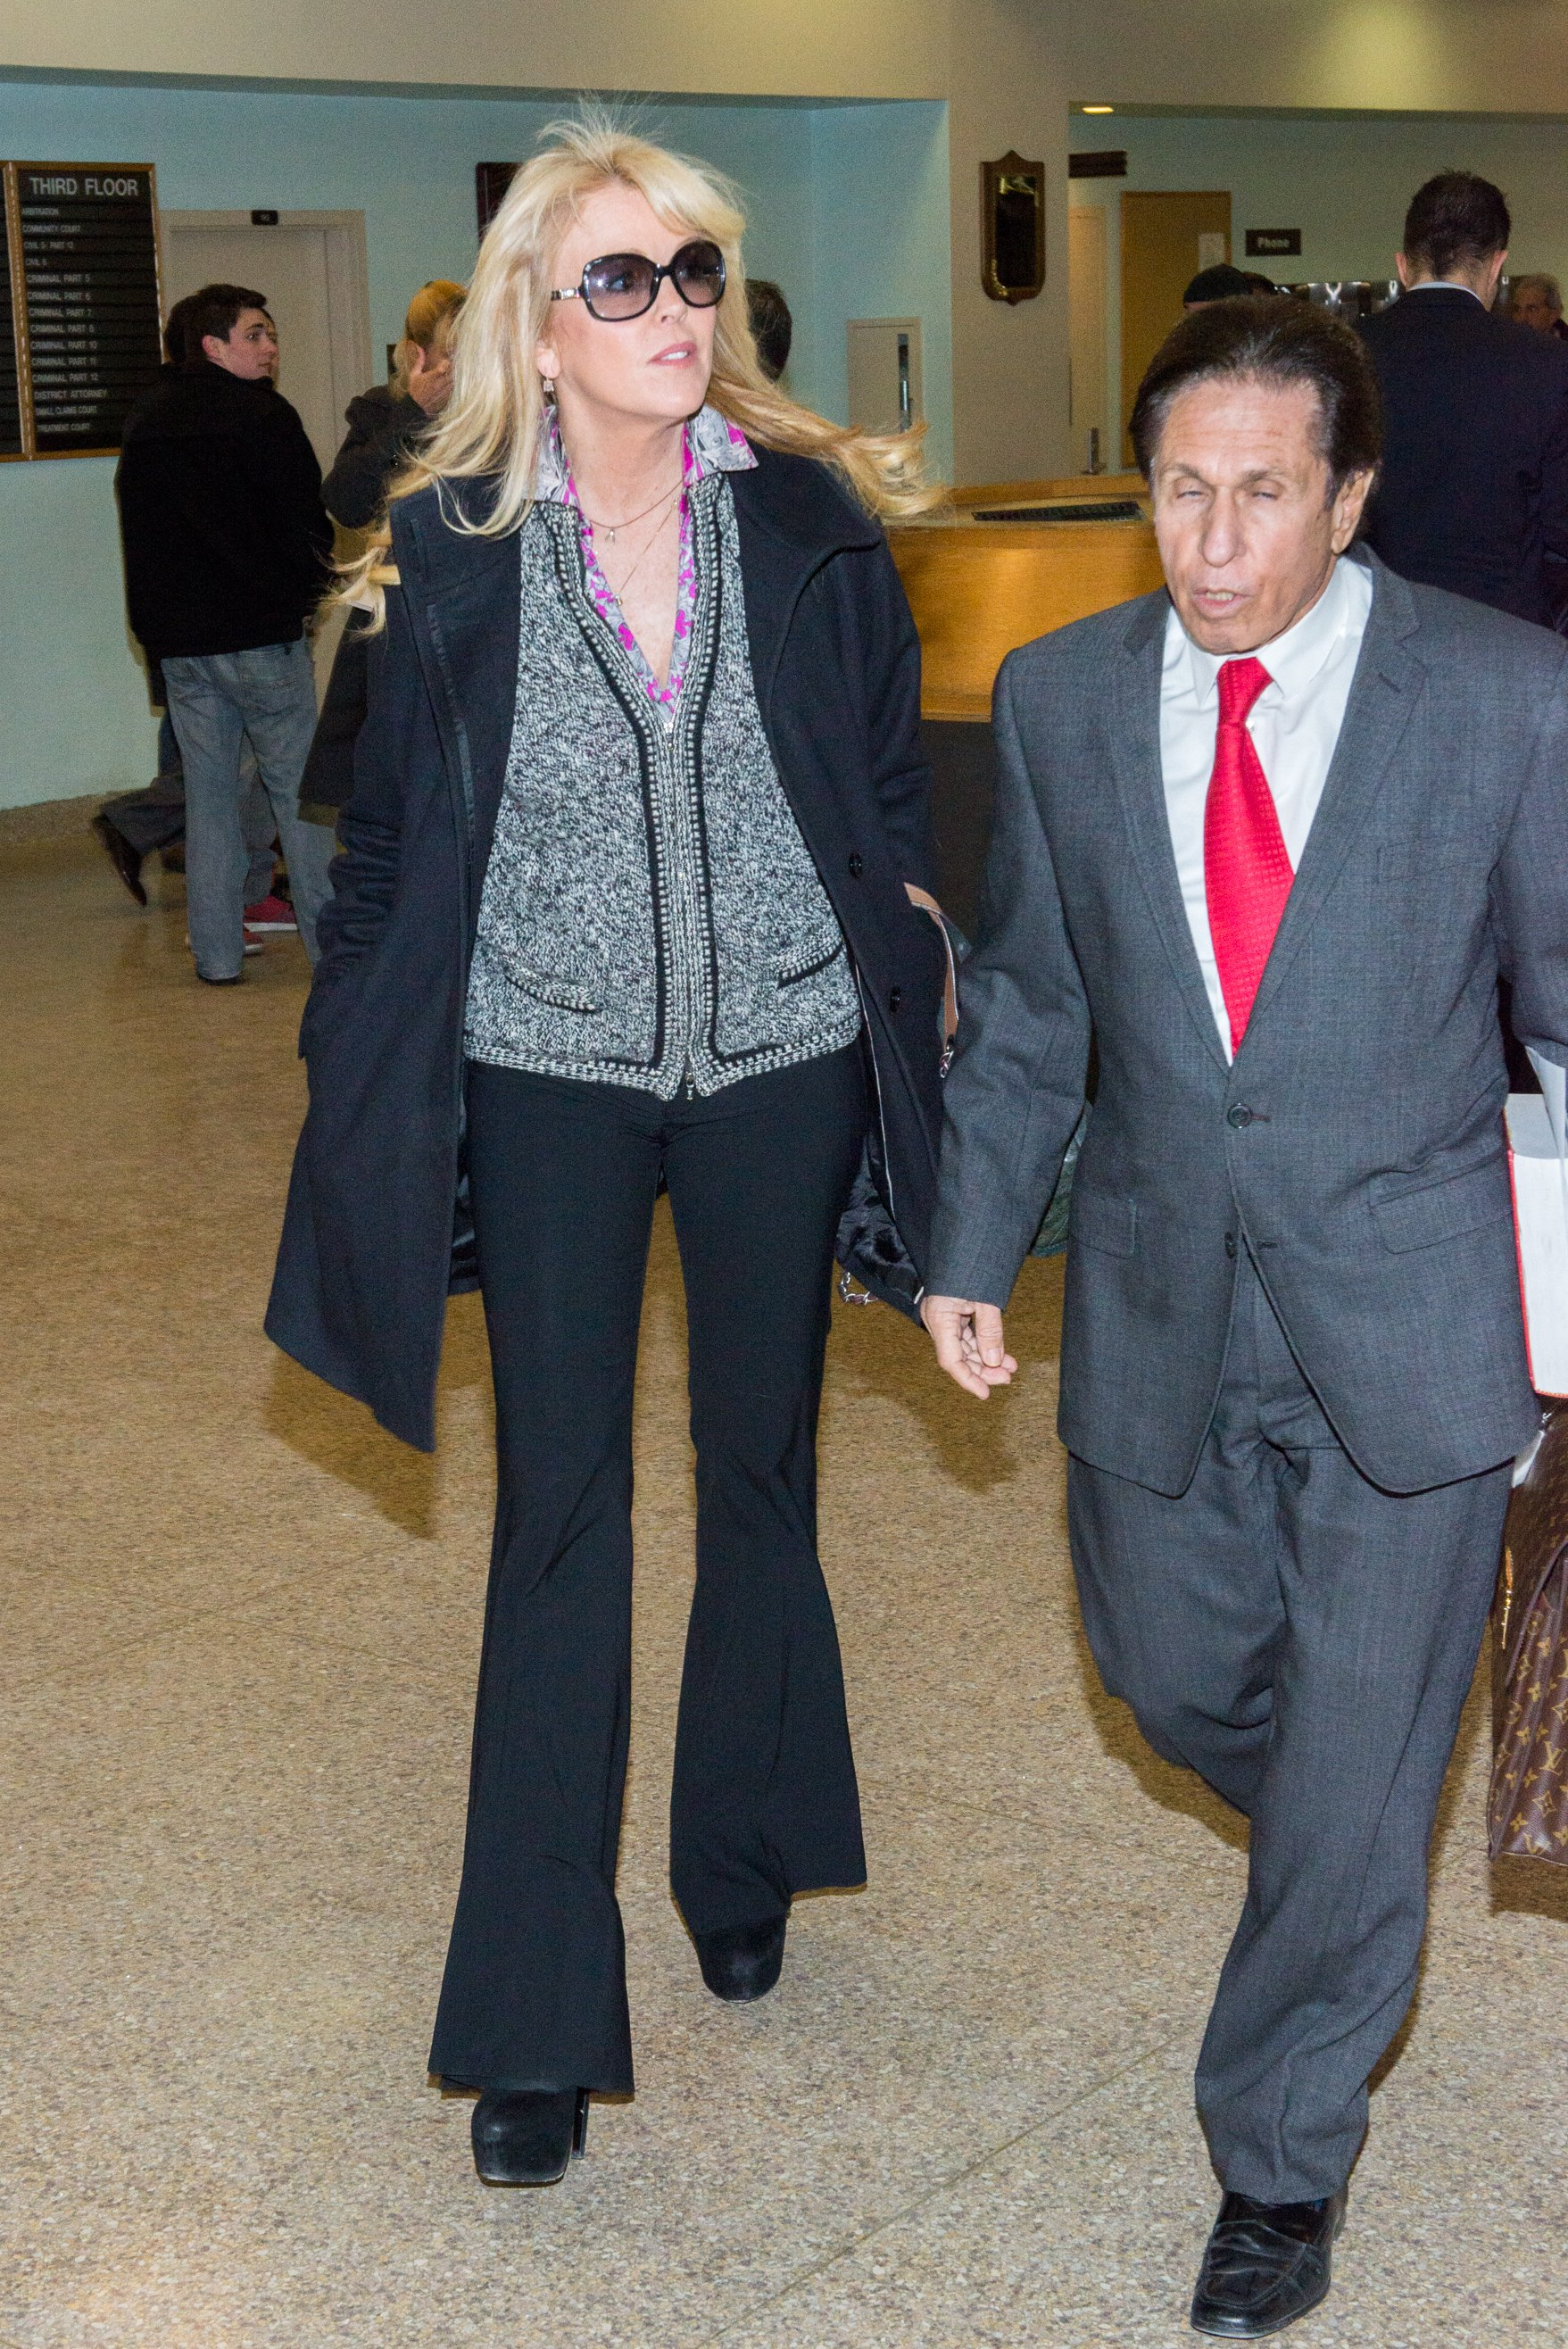 Dina Lohan in court for a hearing with her attorney Mark Heller at Nassau County First District Court in Hempstead, New York | Photo: Mike Pont/Getty Images